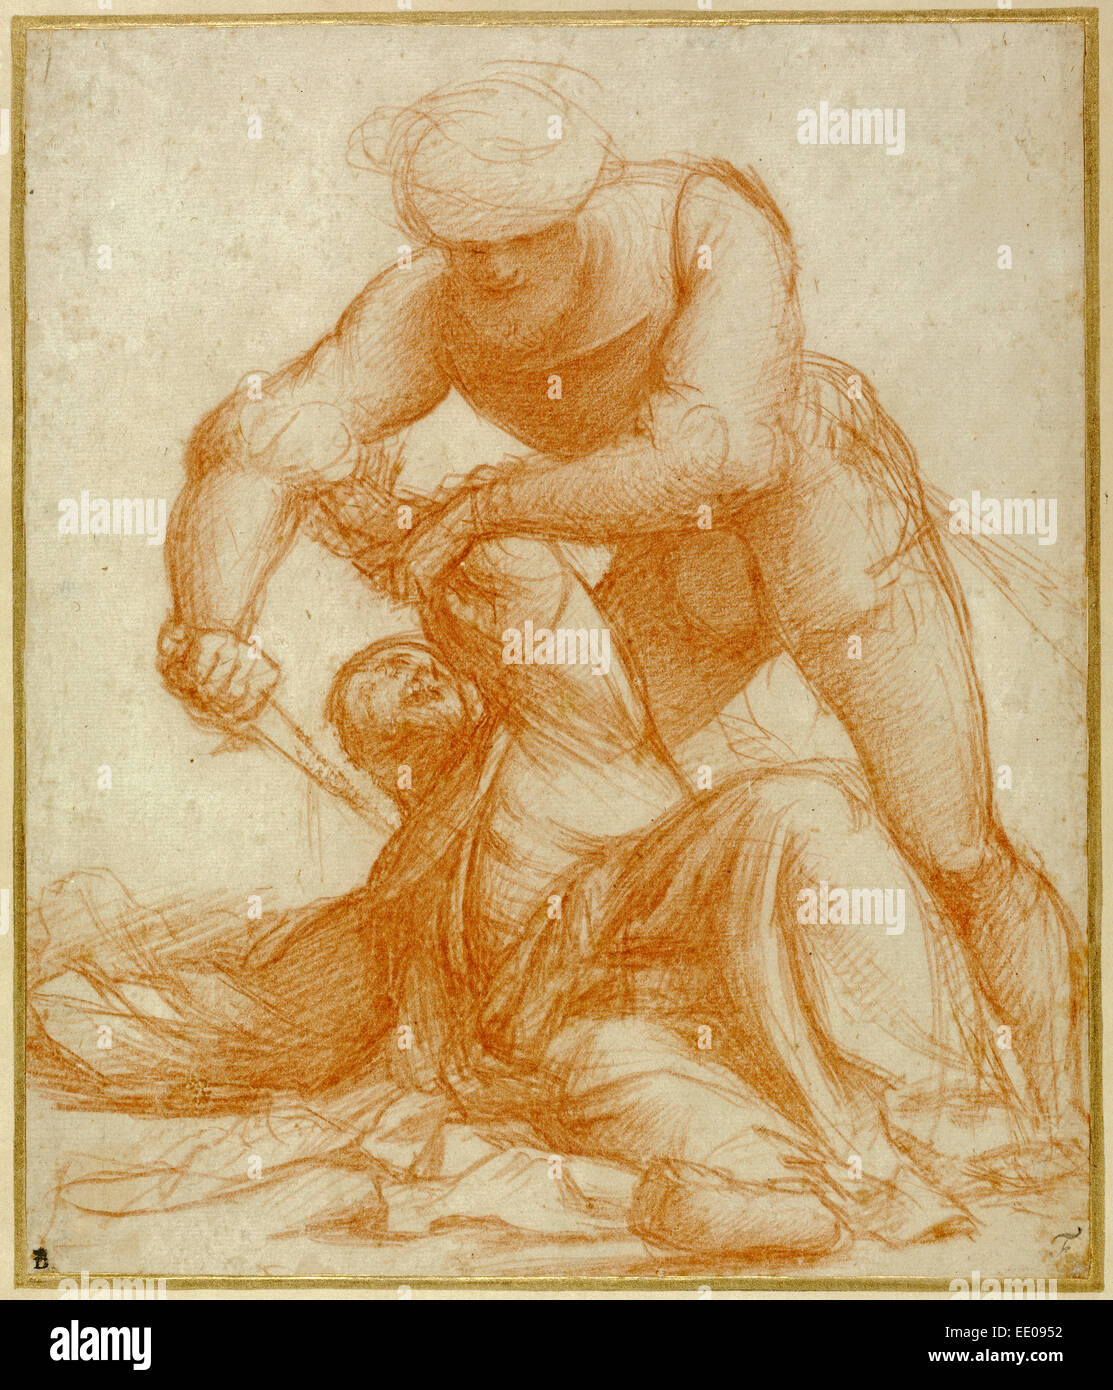 Study of the Martyrdom of Saint Peter Martyr; Pordenone (Giovanni Antonio de'Sacchis), Italian, about 1483/1484 - Stock Image